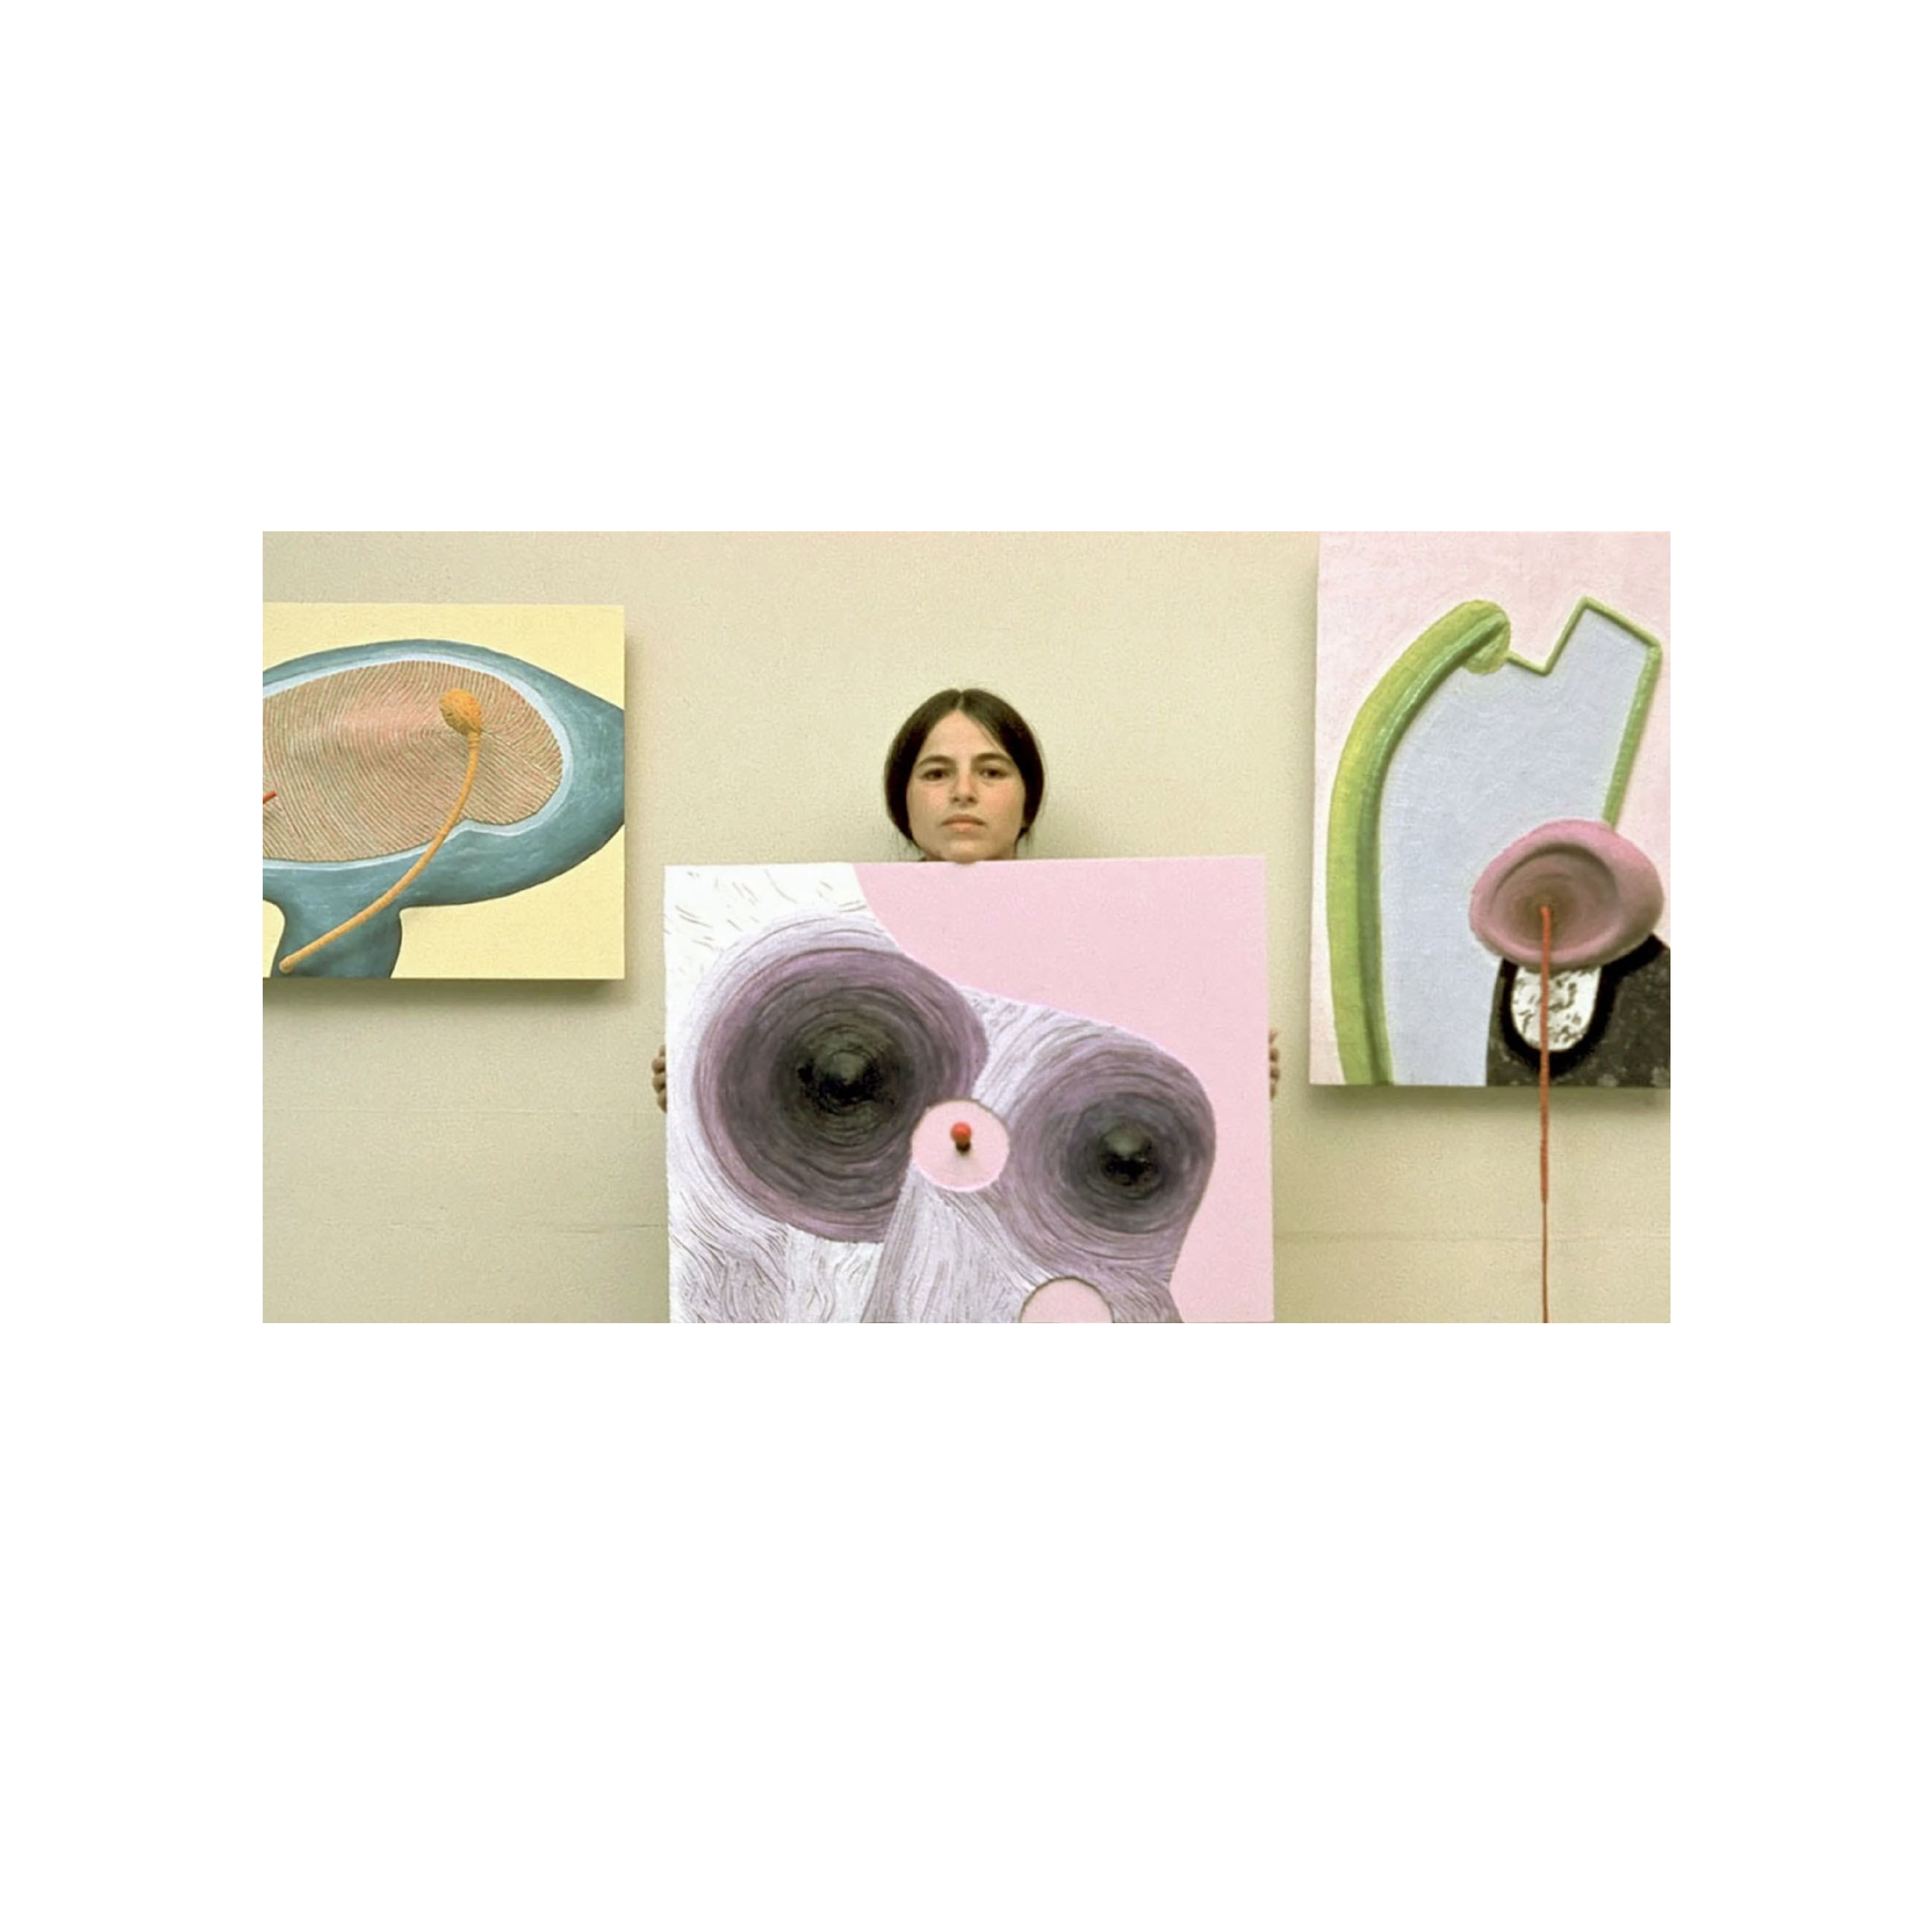 uncover-body-evahesse-06.png